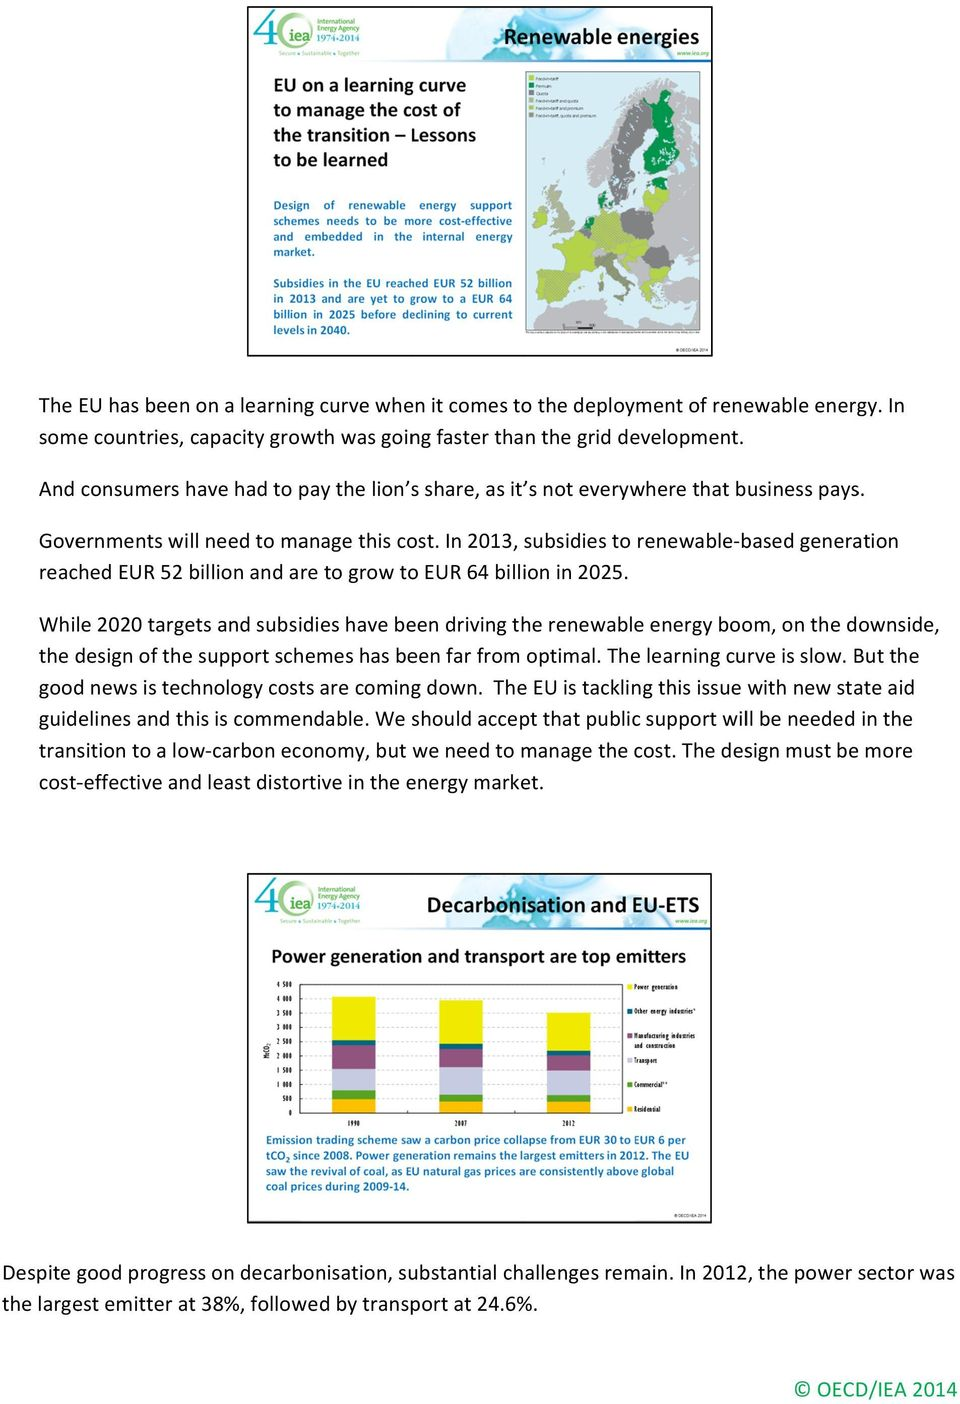 In 2013, subsidies to renewable-based generation reached EUR 52 billion and are to grow to EUR 64 billion in 2025.